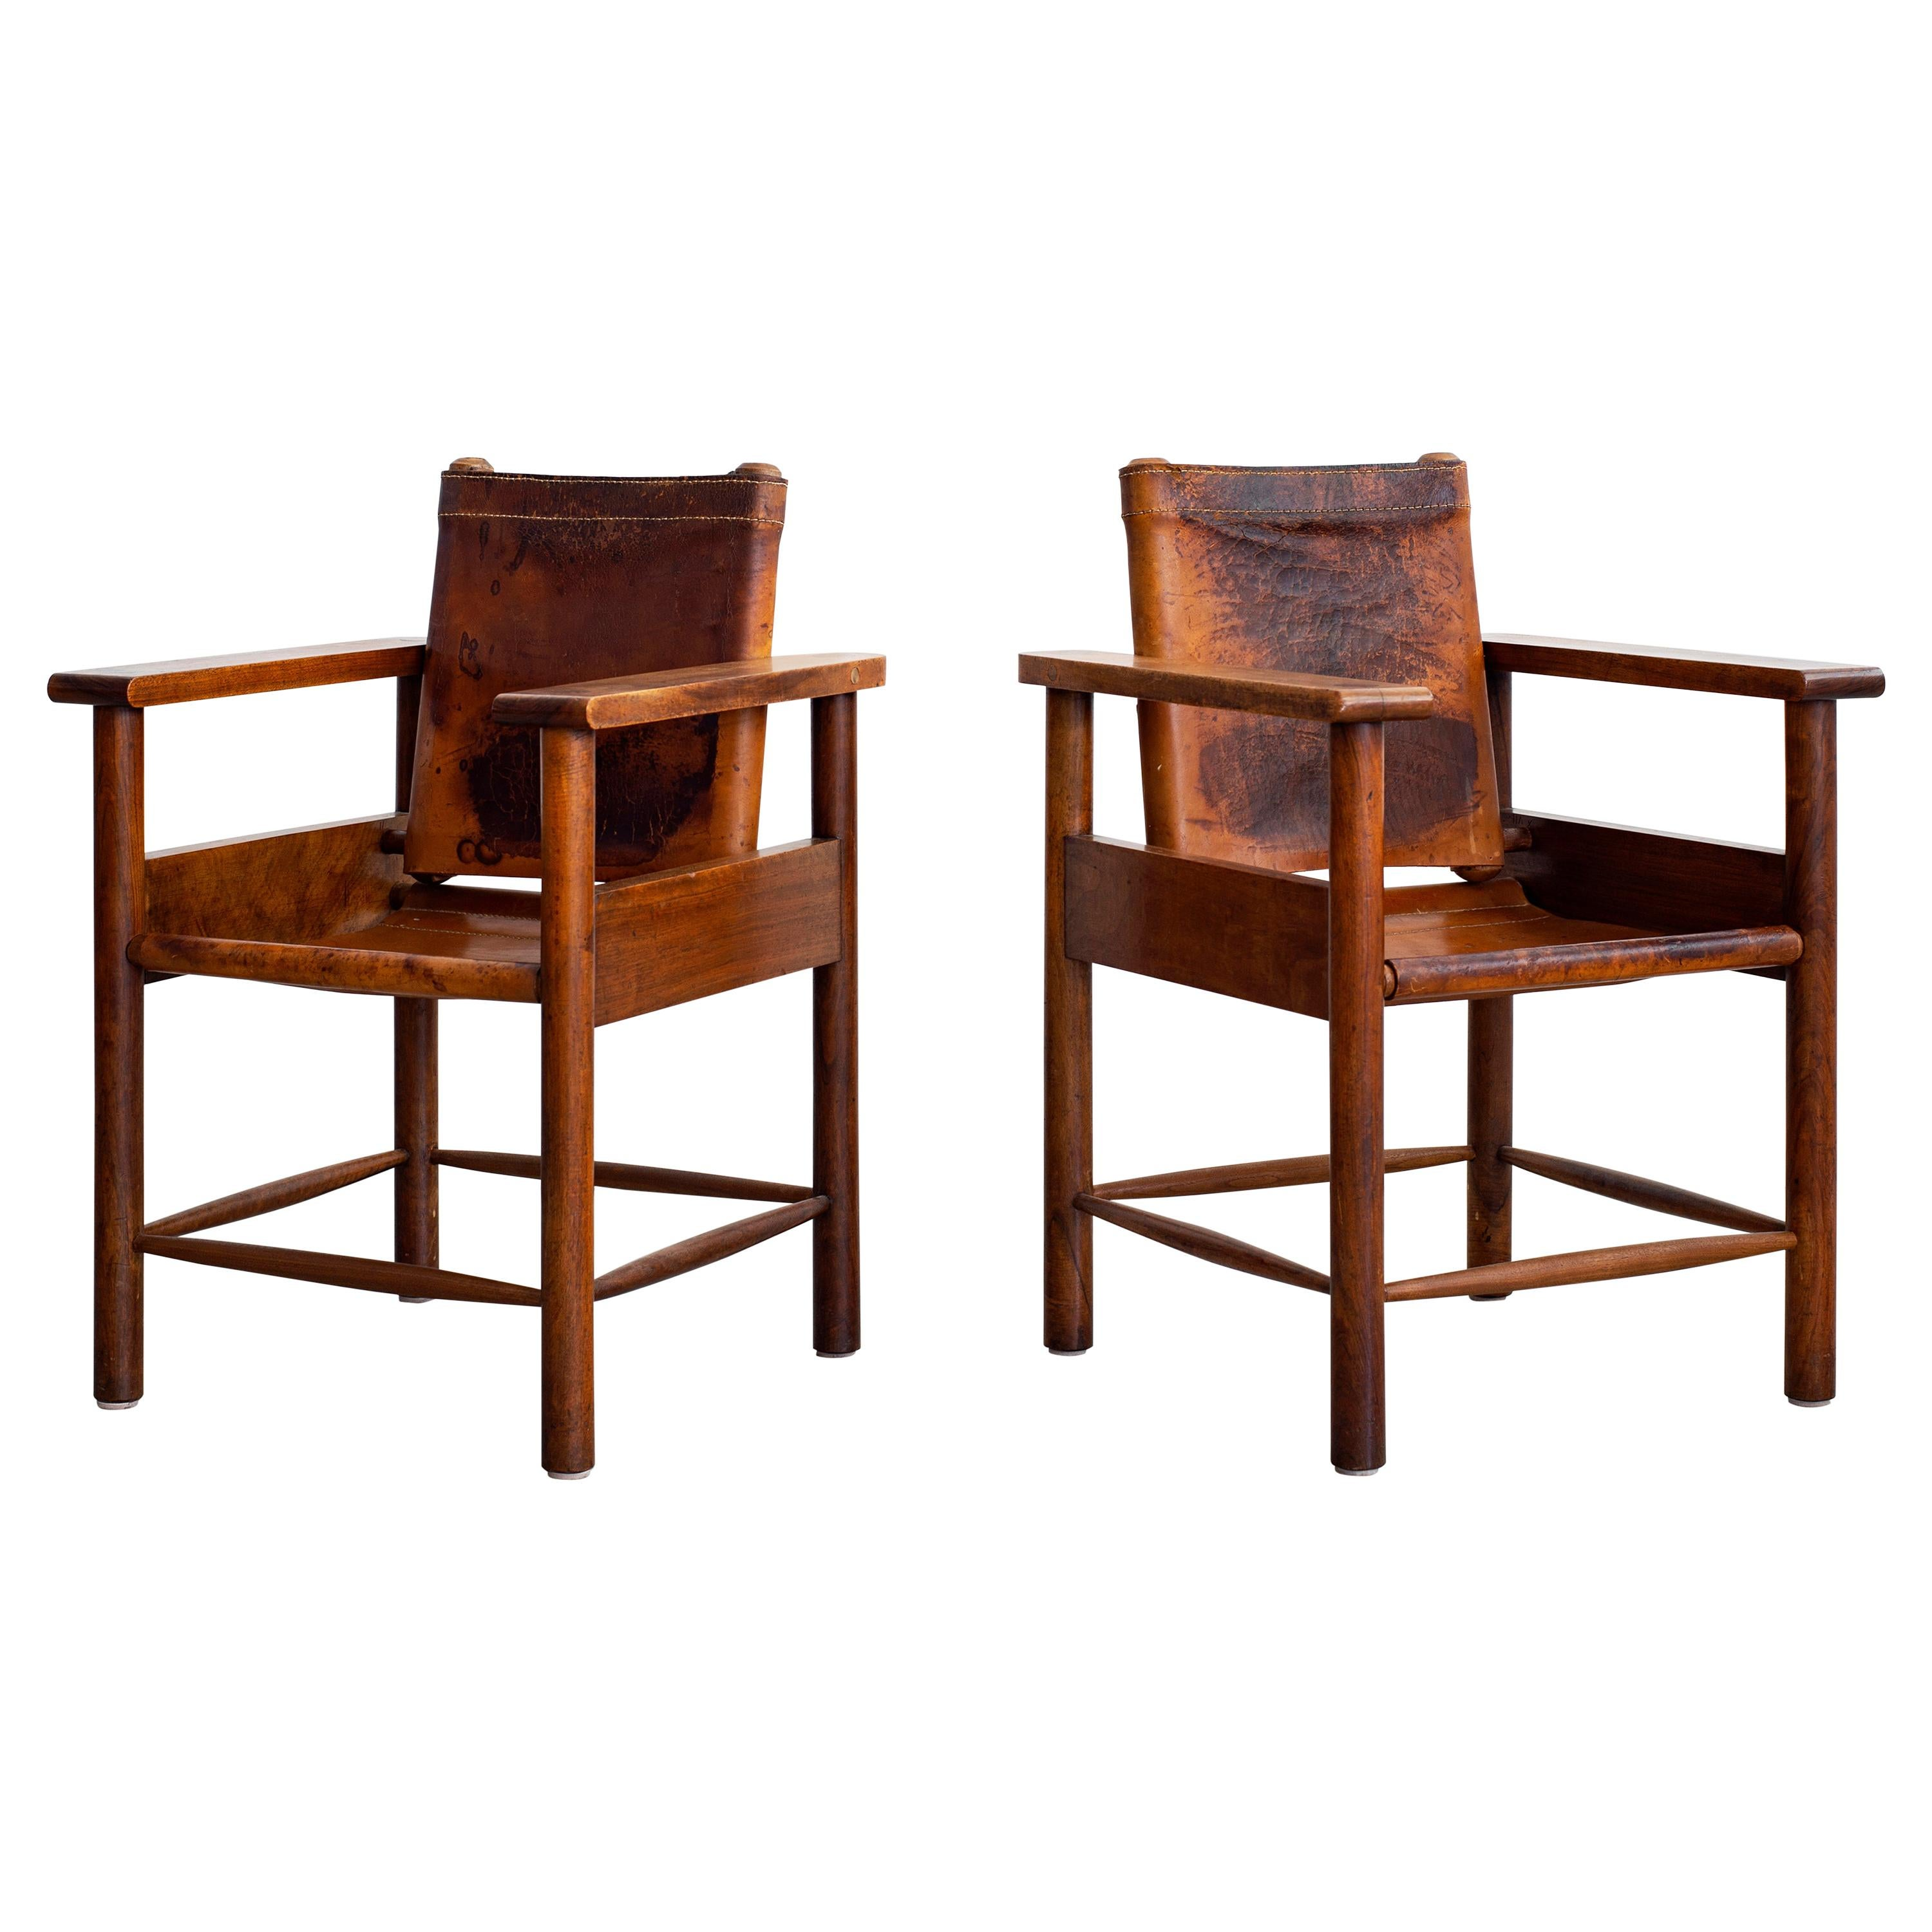 1940s French Leather Chairs